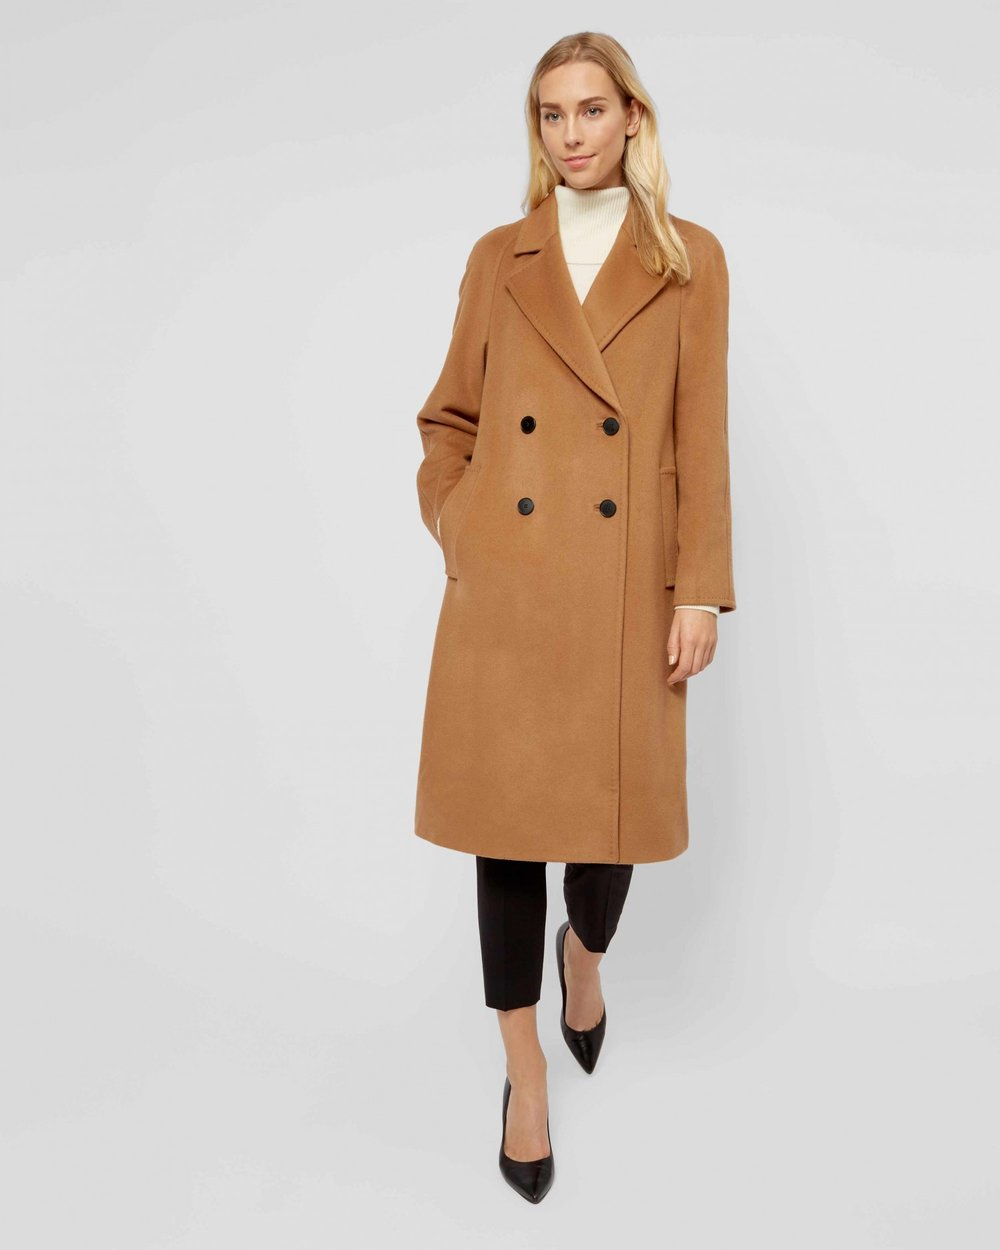 Actual Camel Hair Coat -         96        Normal   0               false   false   false      EN-US   X-NONE   X-NONE                                                                                                                                                                                                                                                                                                                                                                                                                                                                                                                                                                                                                                                                                                                                                                                                                                                                                                                                                                                                                                                                                                                                                                                                                                                                                               /* Style Definitions */ table.MsoNormalTable 	{mso-style-name: